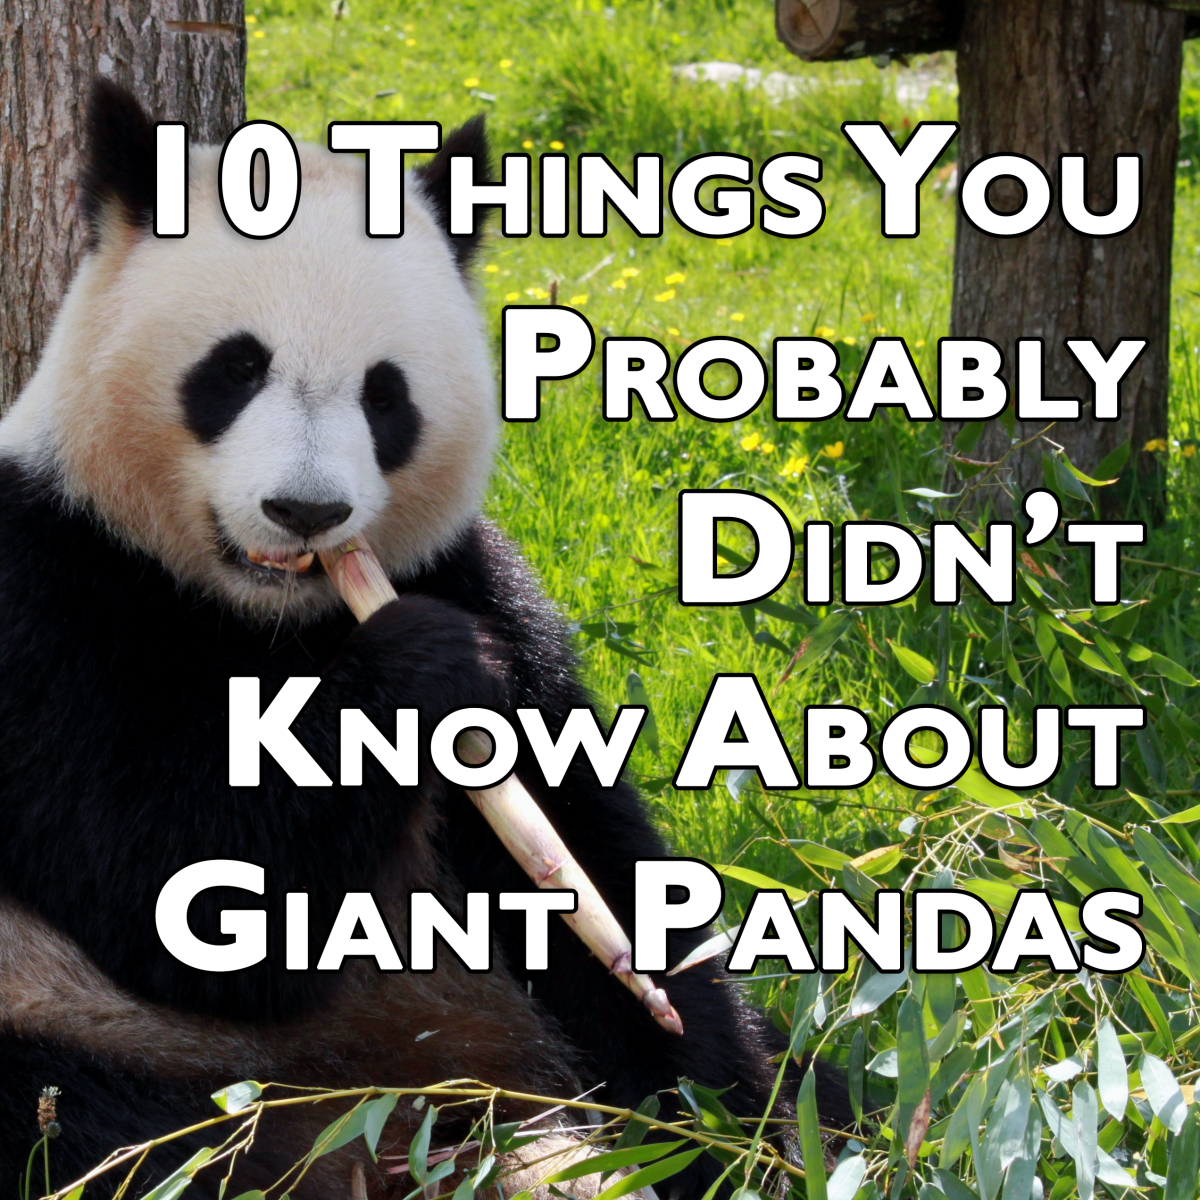 10 Things You Probably Didn't Know About Pandas